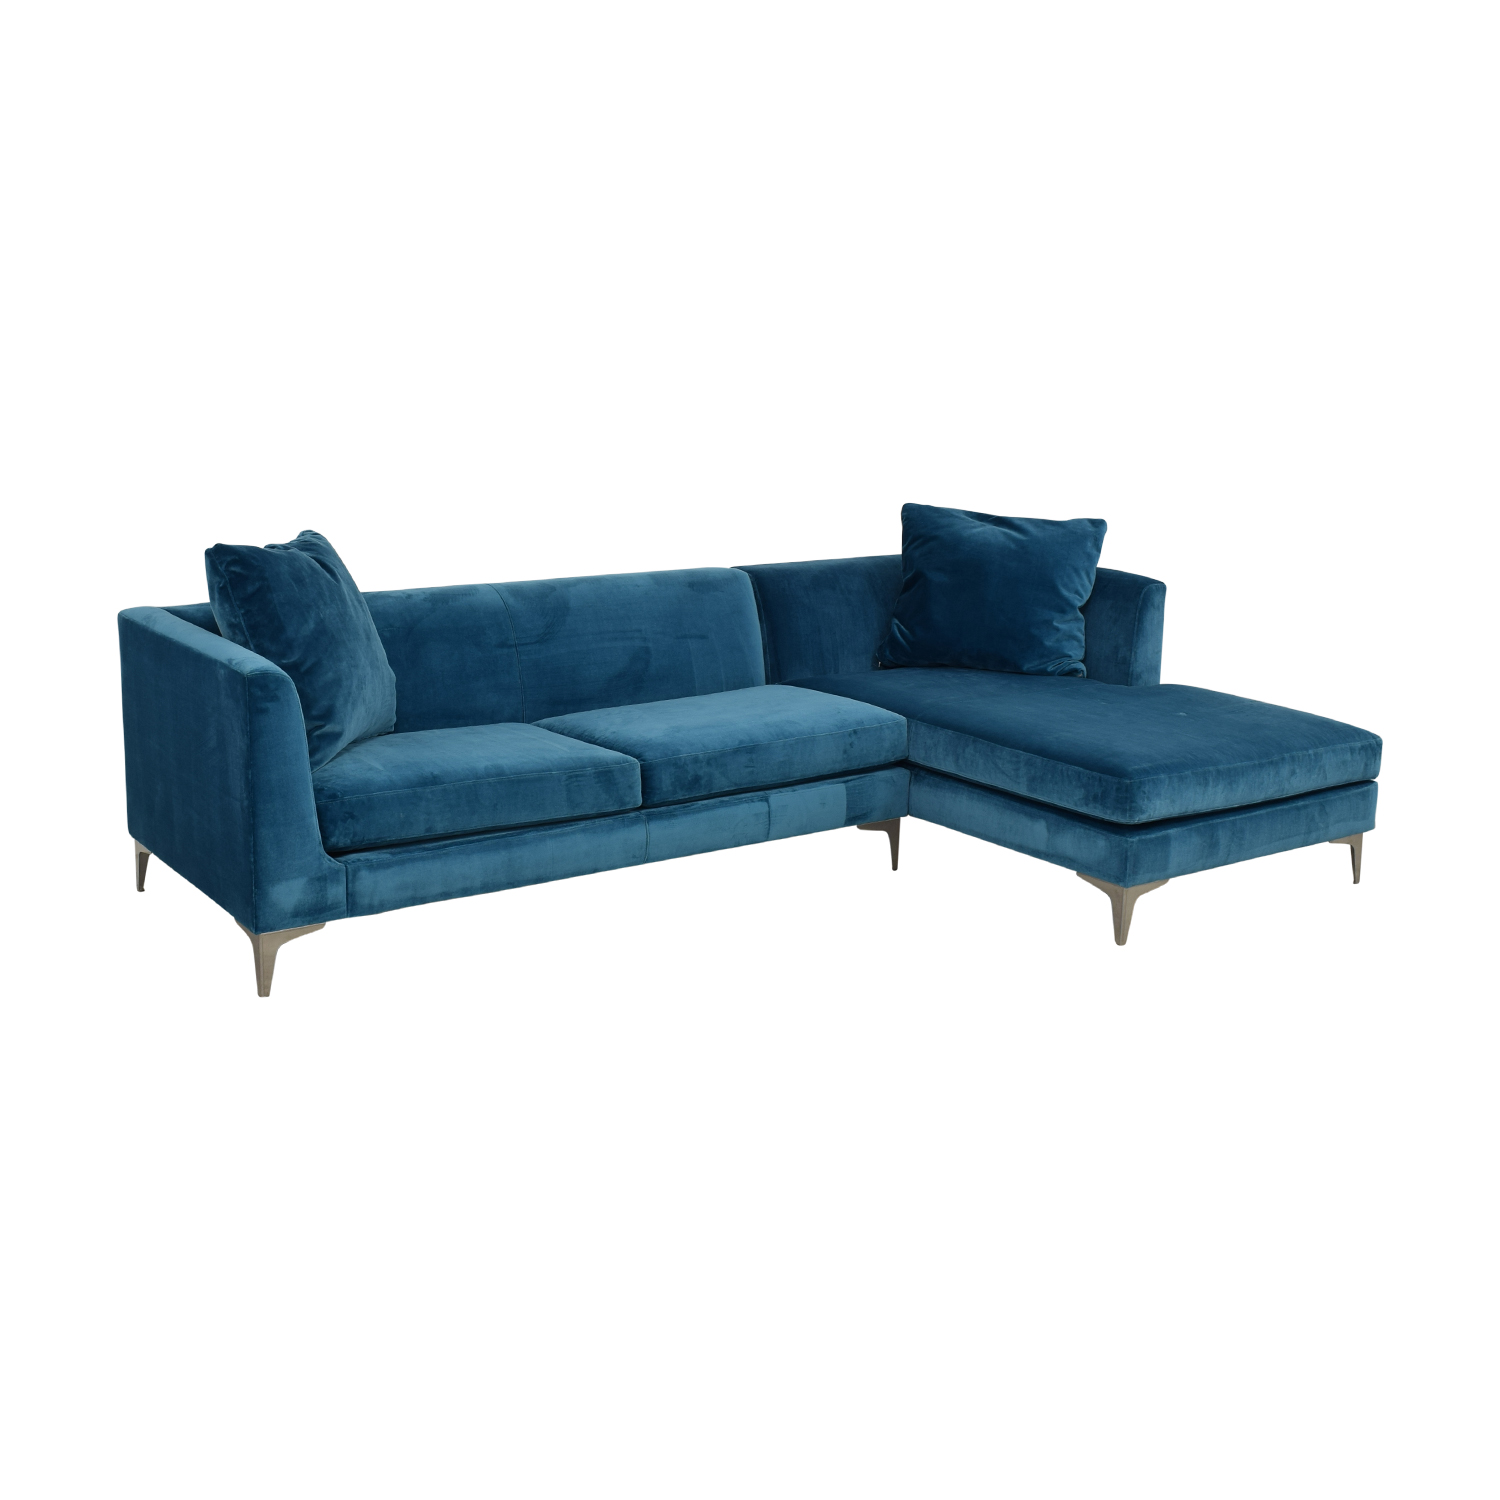 Room & Board Room & Board Sterling Sectional with Right Arm Chaise on sale